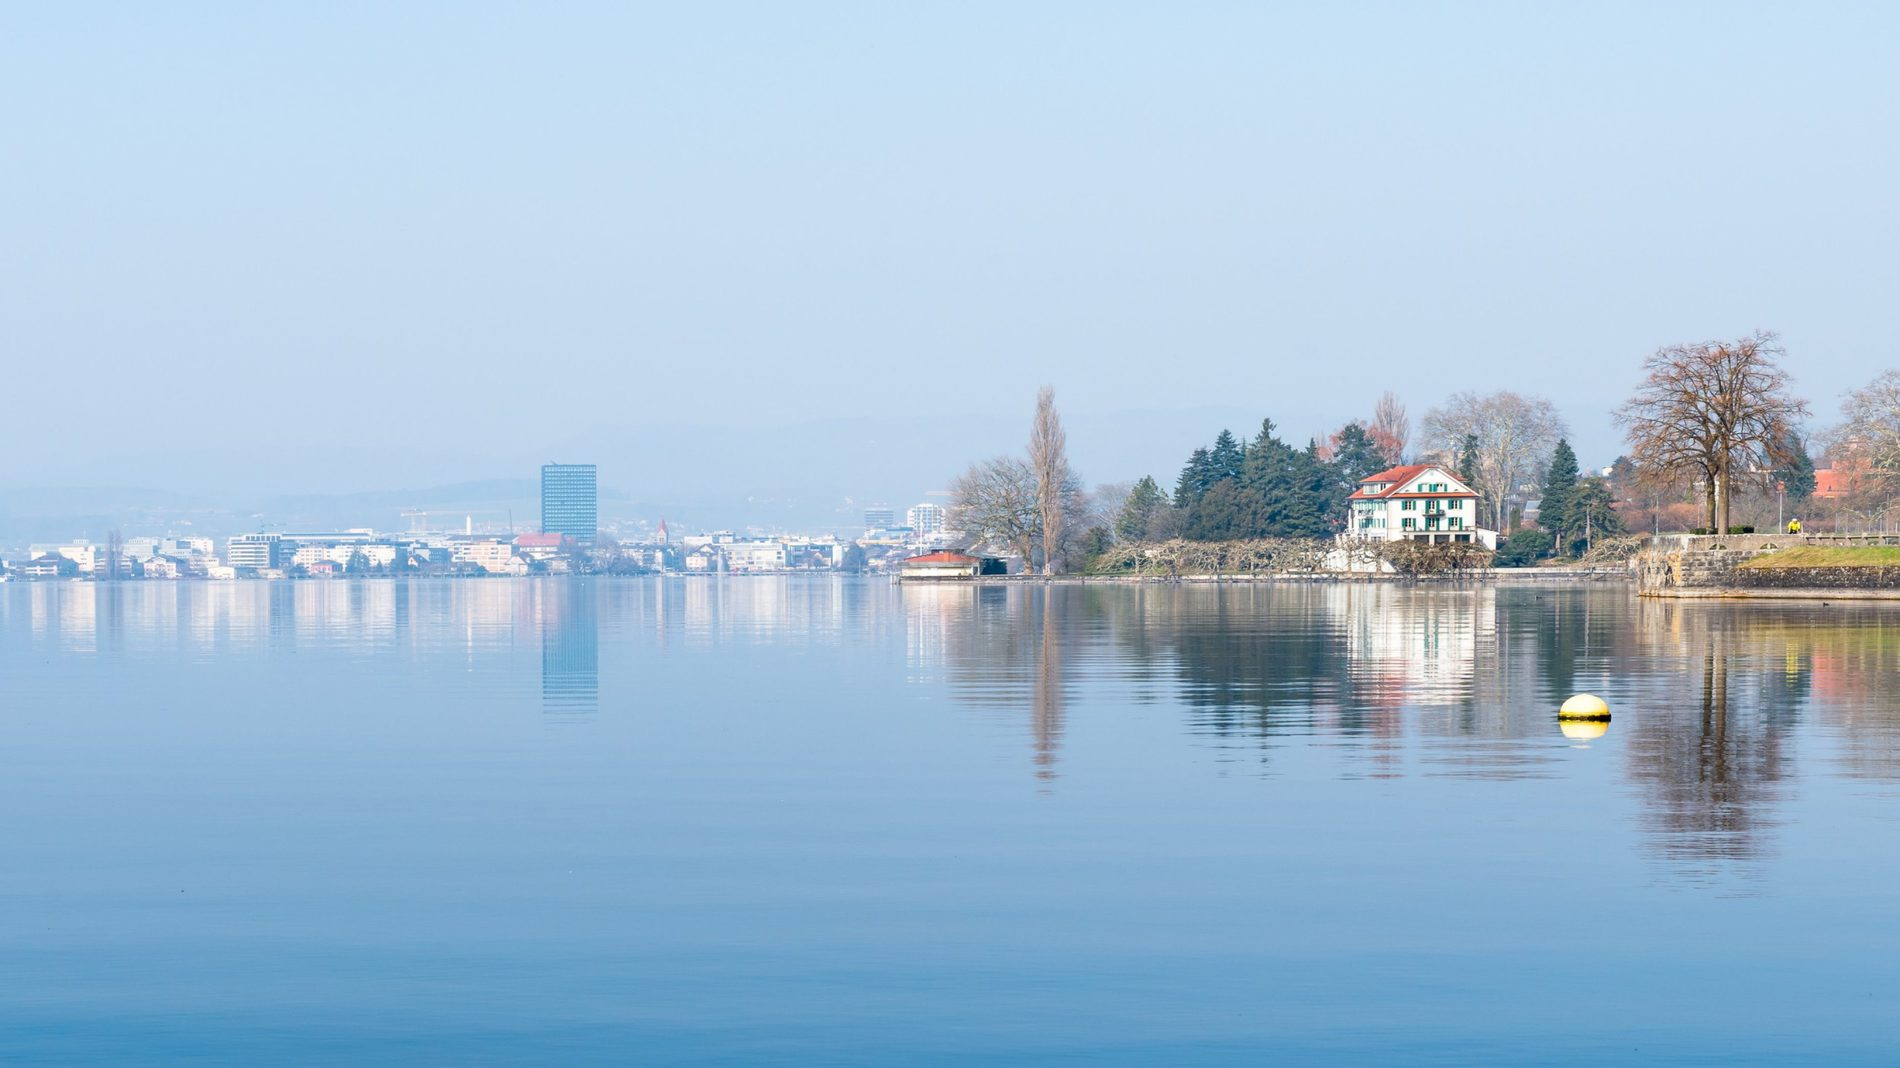 View of Zug's lake and city in the background.